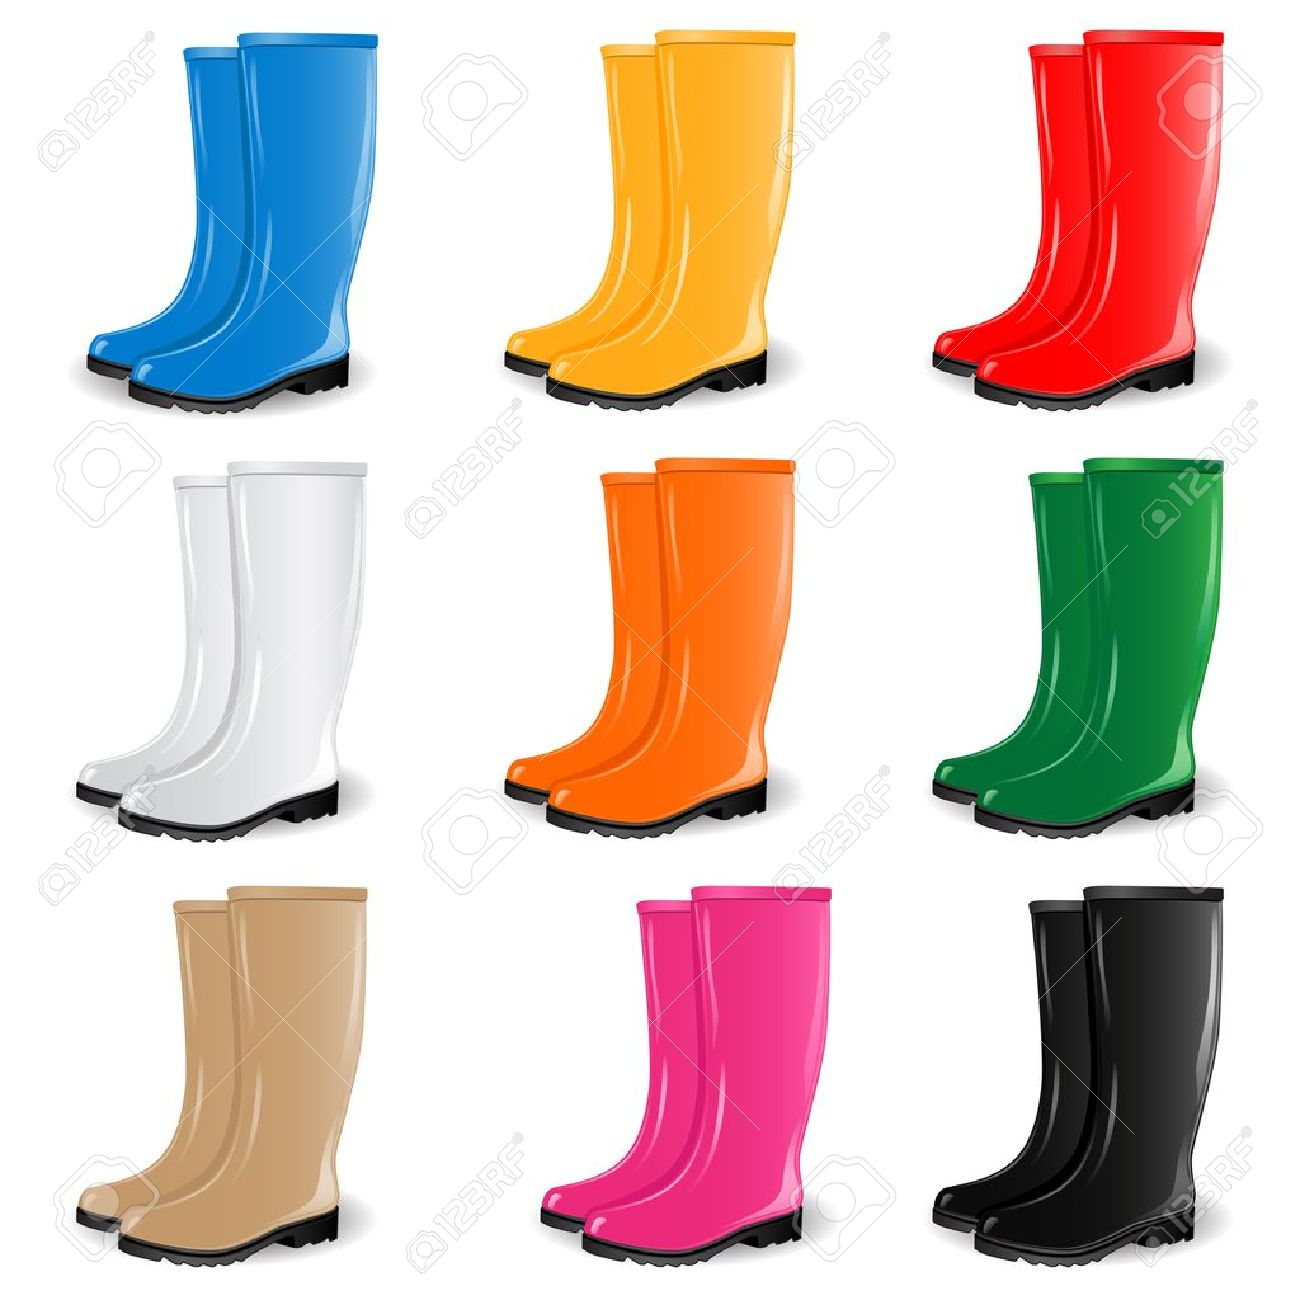 Colored Rubber Boots Royalty Free Cliparts, Vectors, And Stock ...